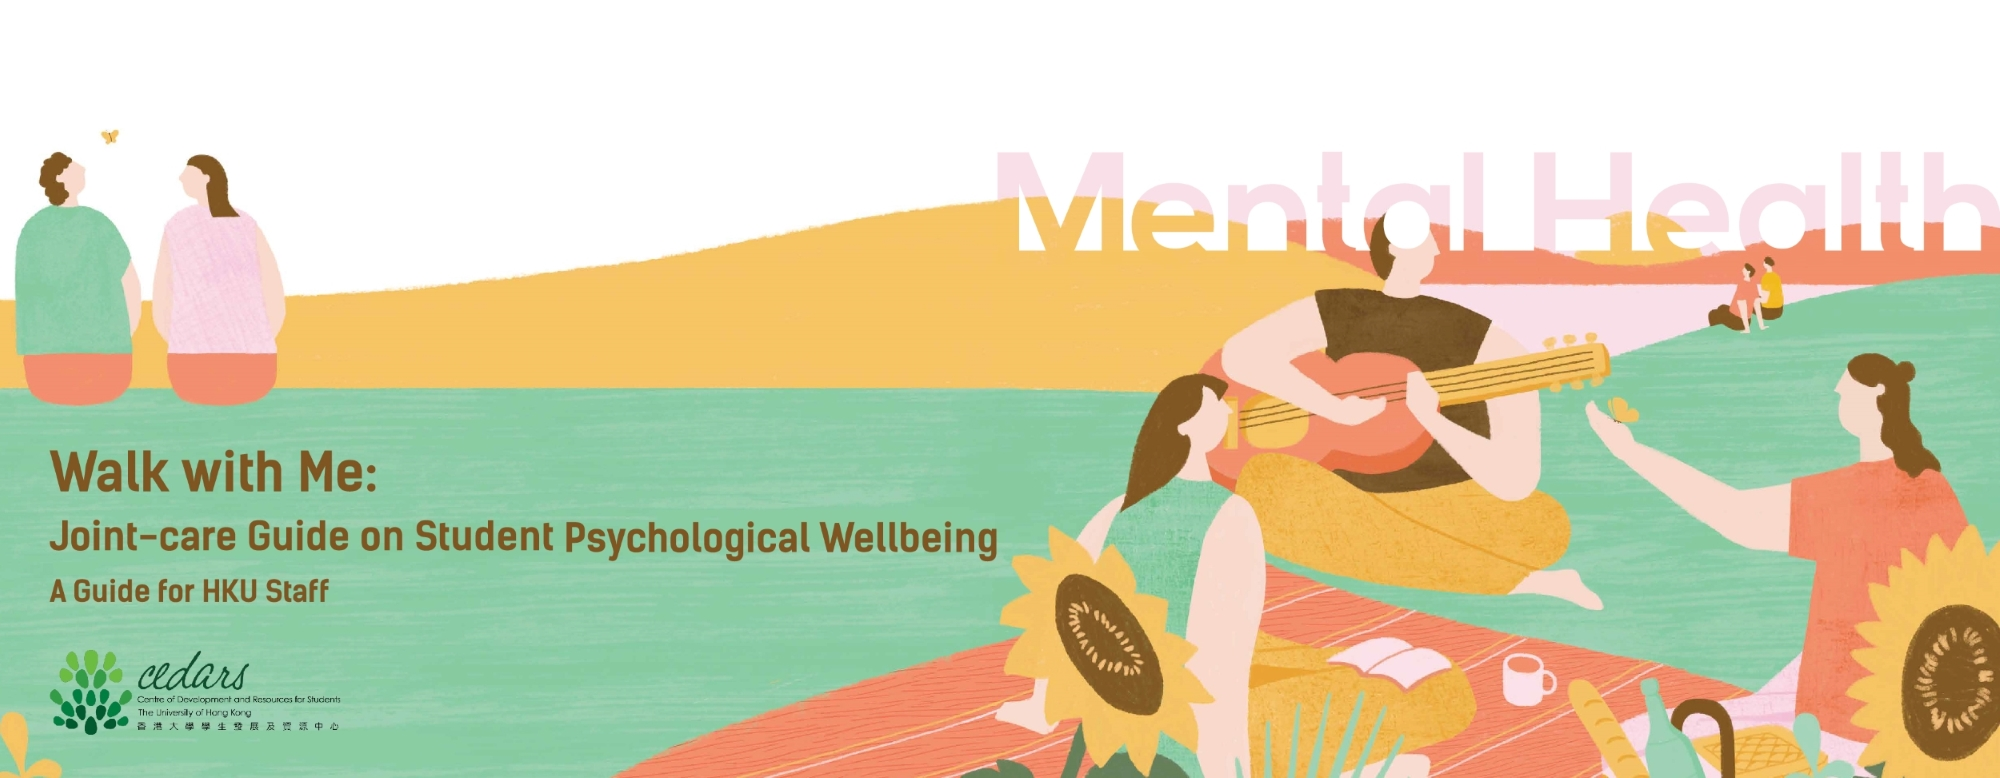 Walk with Me: Joint-care Guide on Student Psychological Wellbeing (A Guide for HKU Staff)